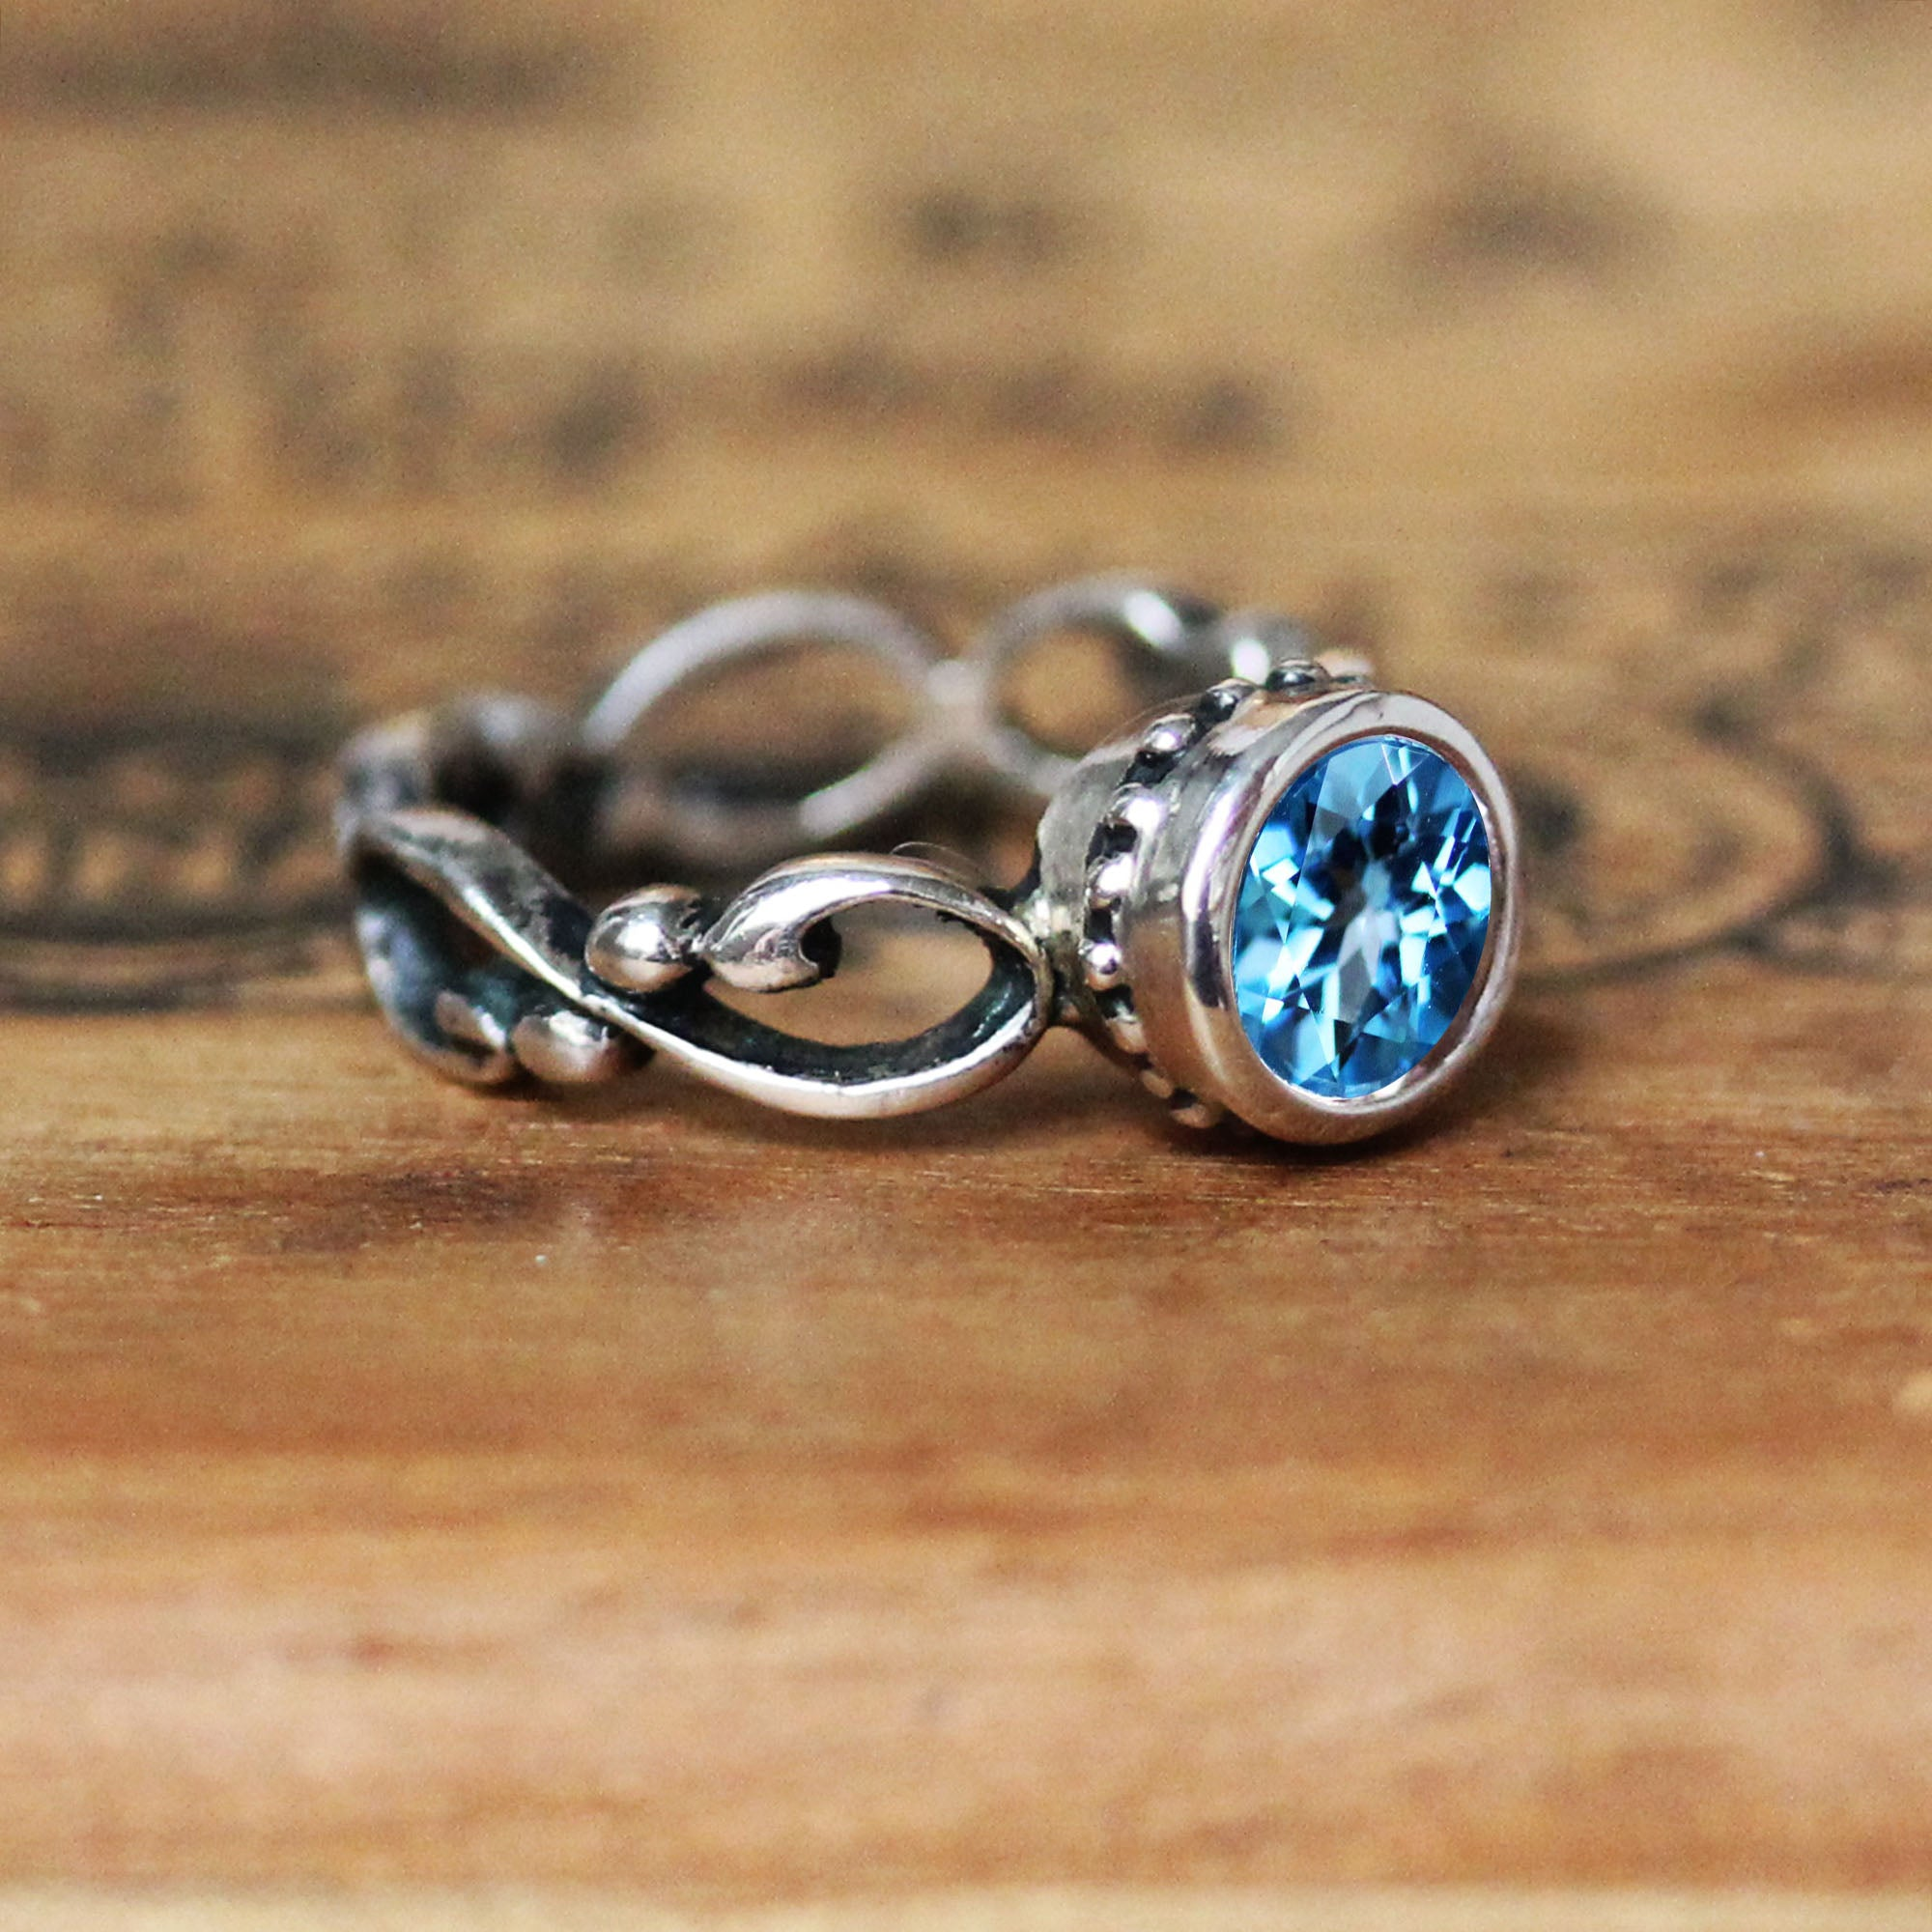 Wrought Ring with Swiss Blue Topaz in Sterling Silver